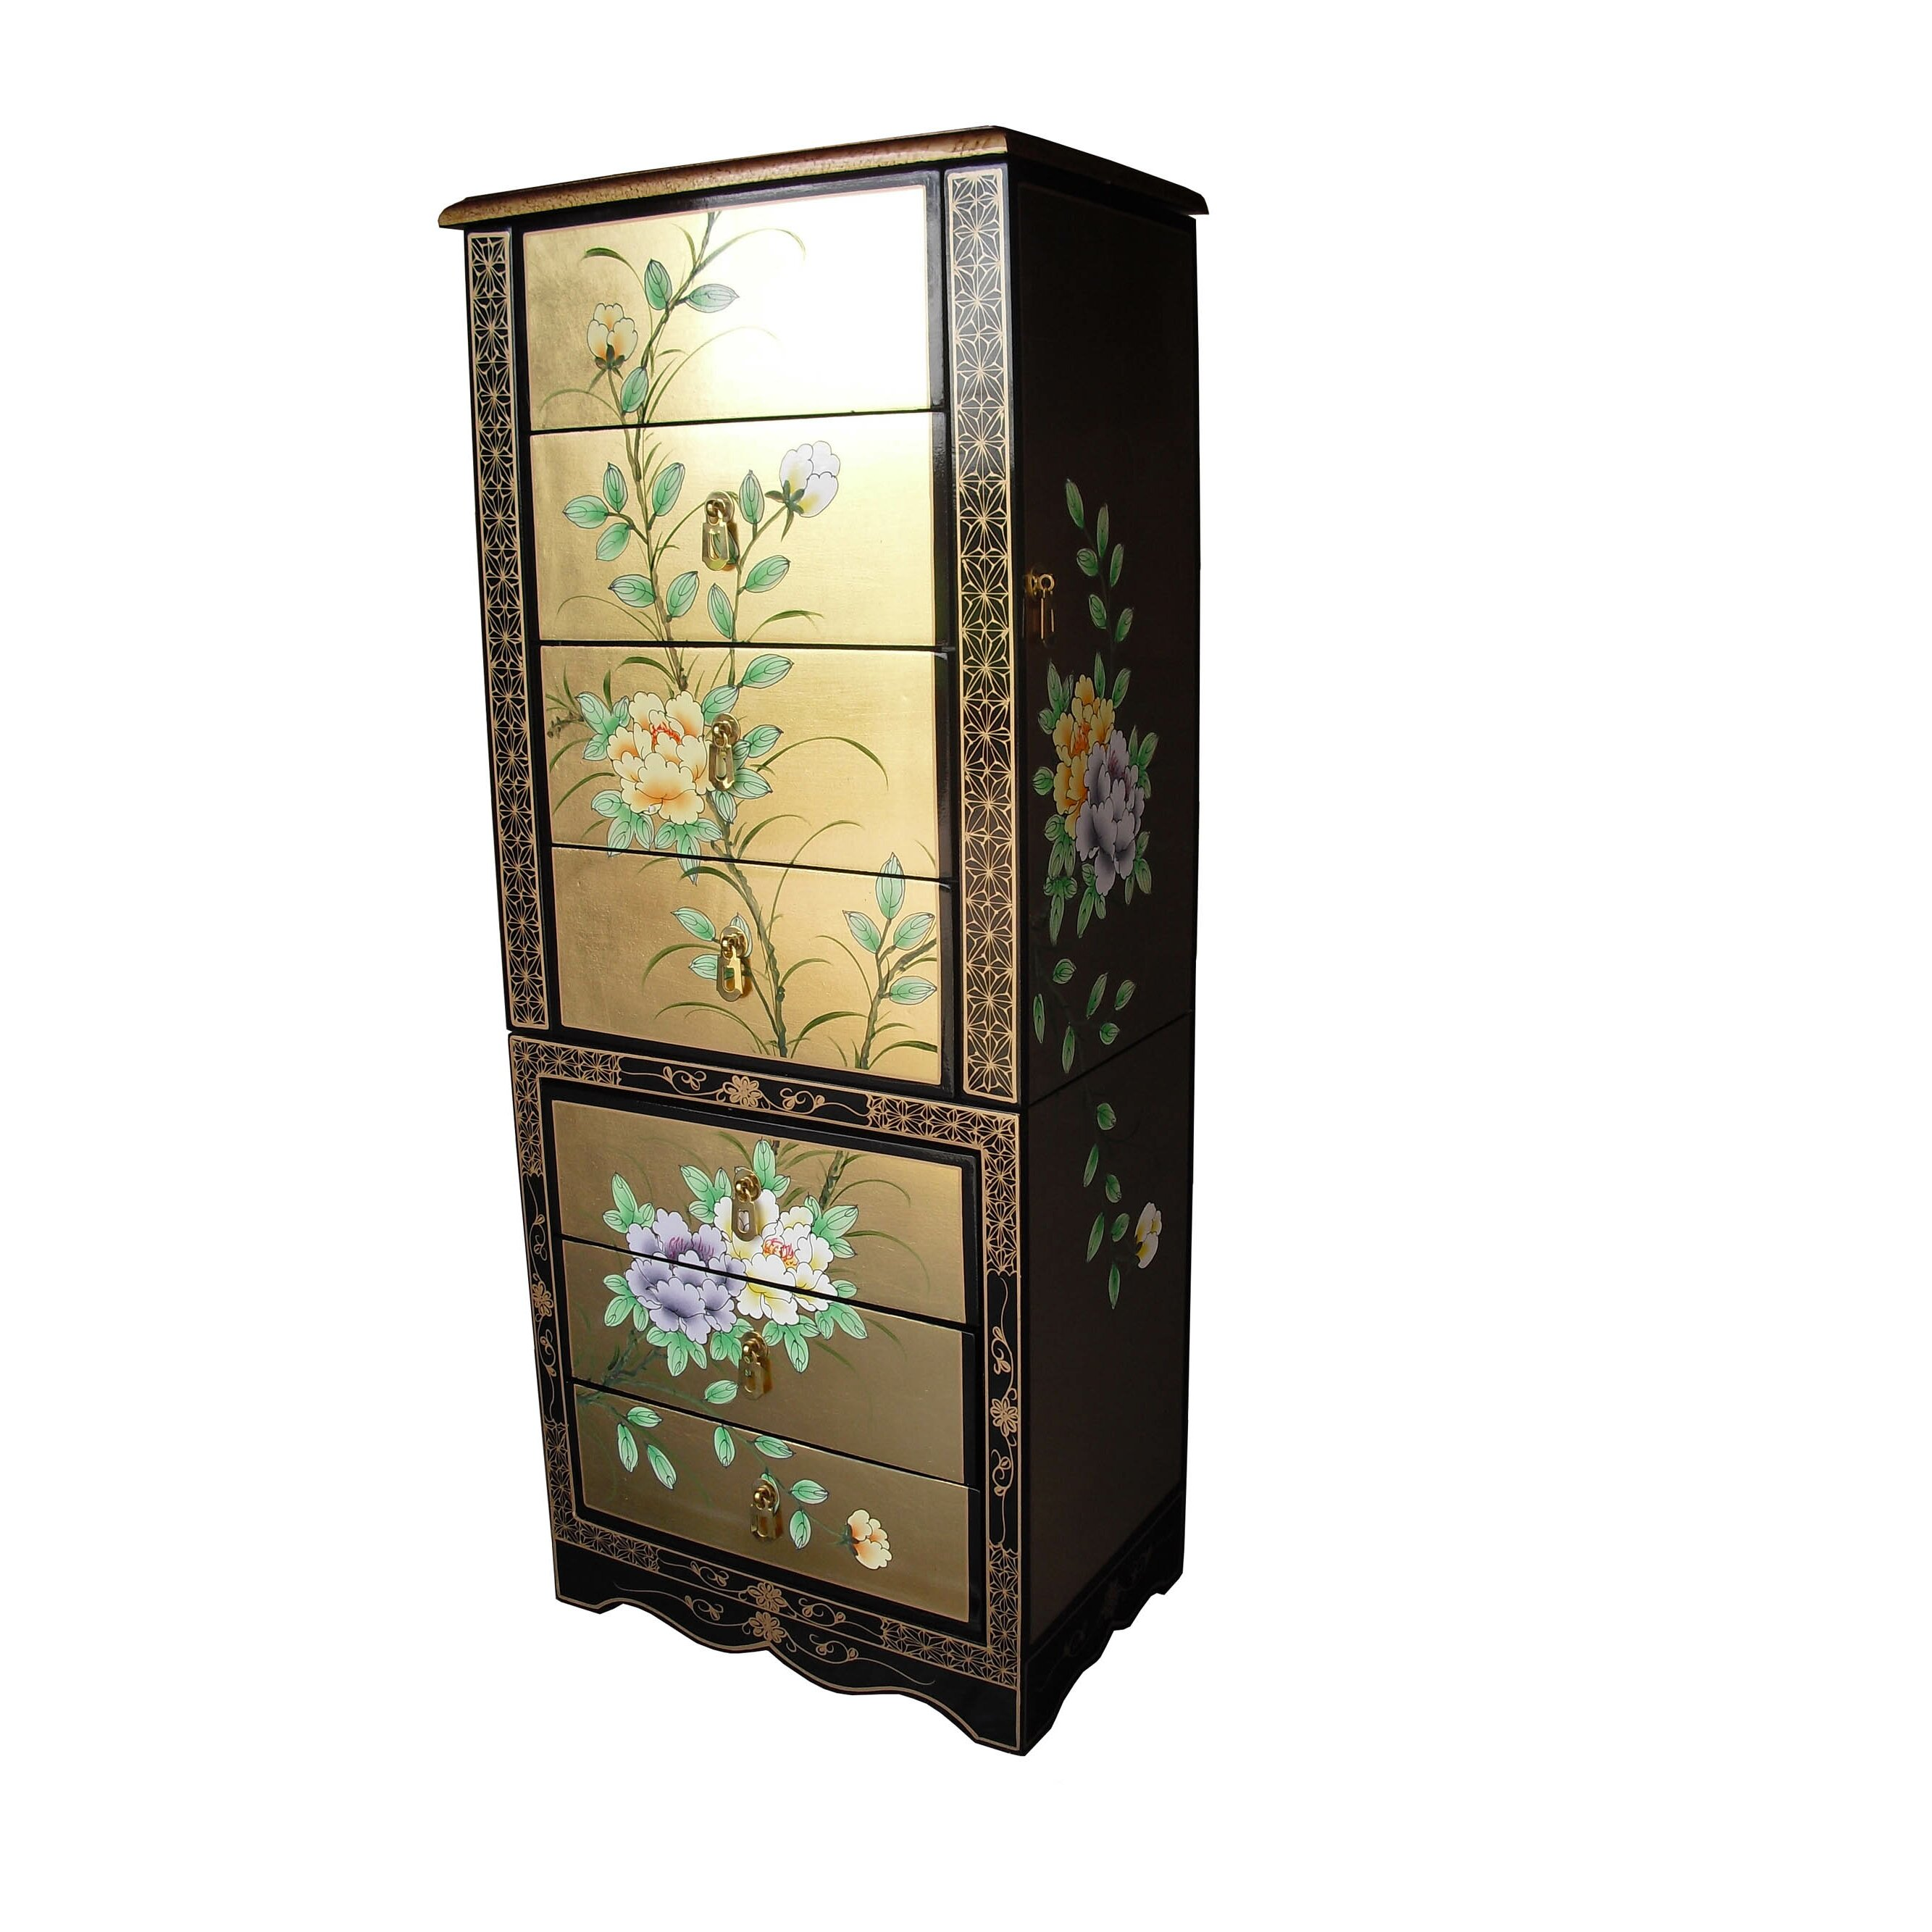 Grand international decor jewellery armoire reviews for Grand international decor